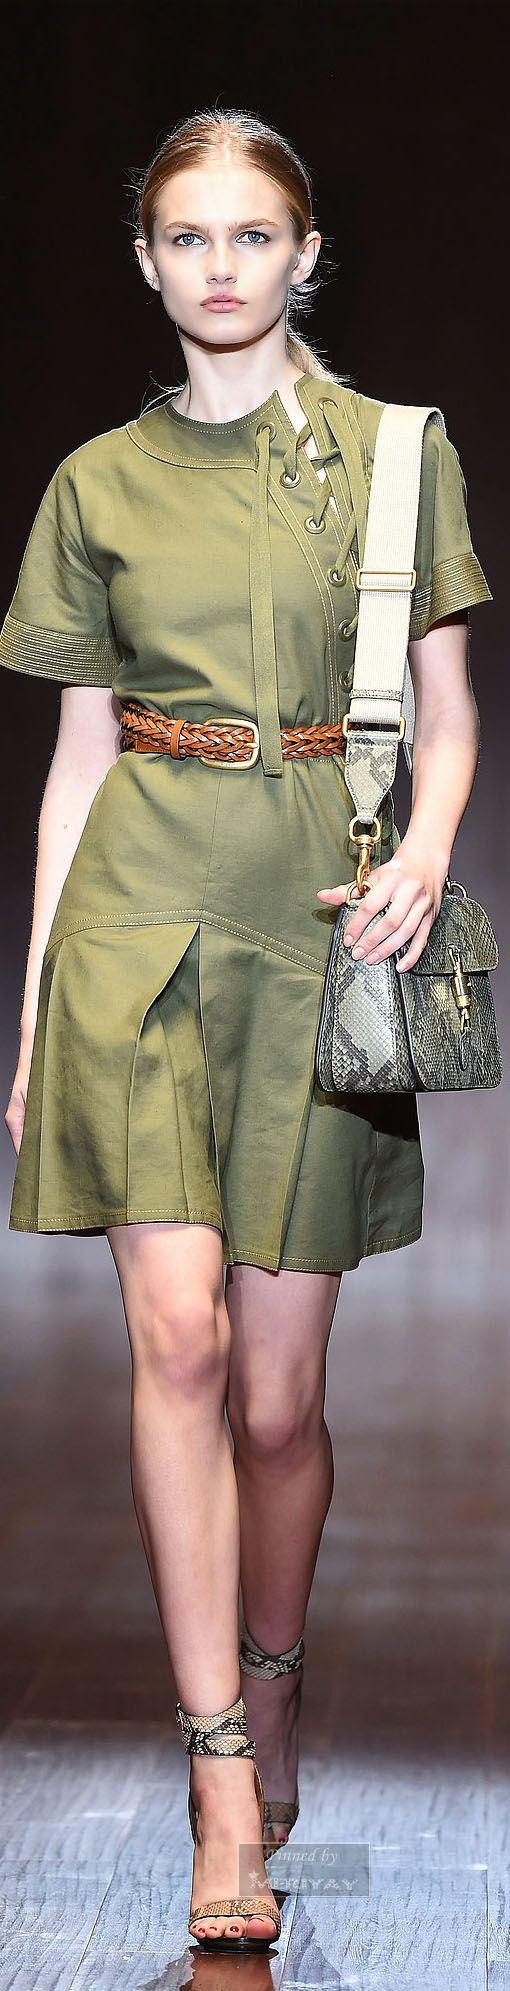 Gucci.Spring-summer 2015. - had tailor make me a top only in navy blue linen for 200 RMB (34 USD)